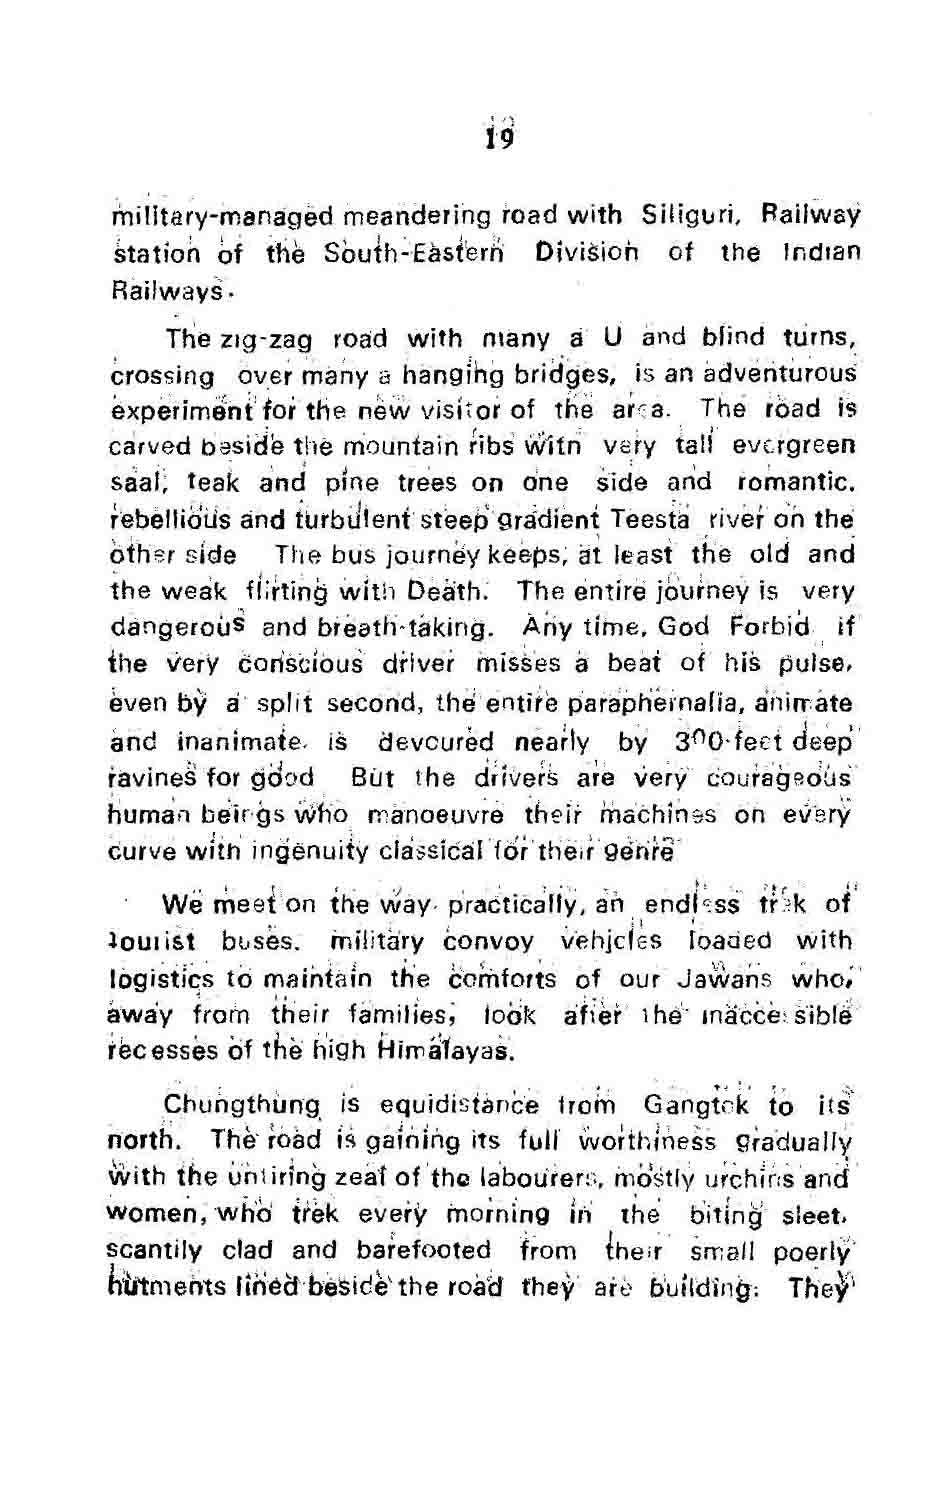 Essay on guru angad dev ji